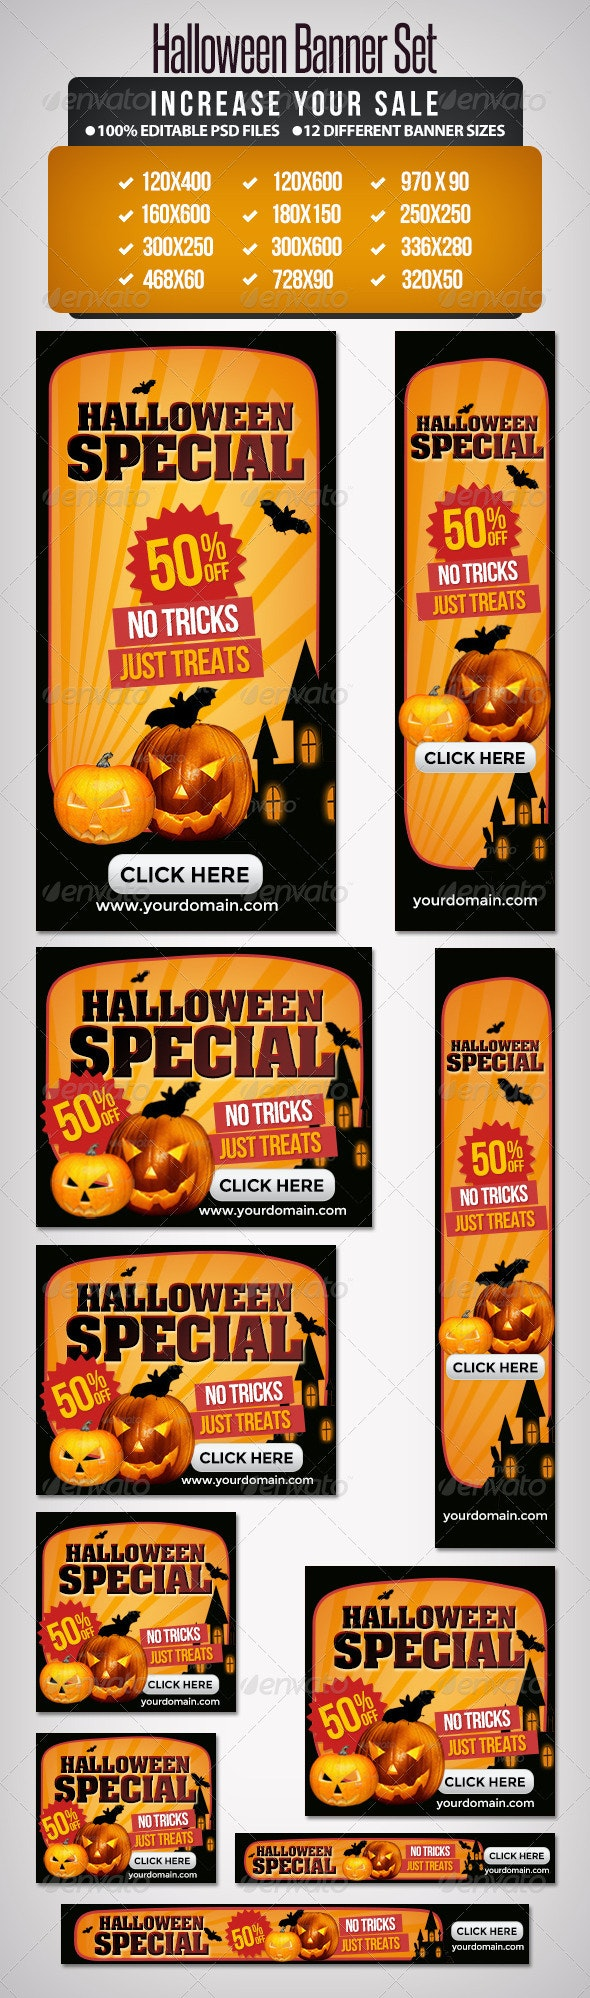 Halloween Banner Set - I - Banners & Ads Web Elements